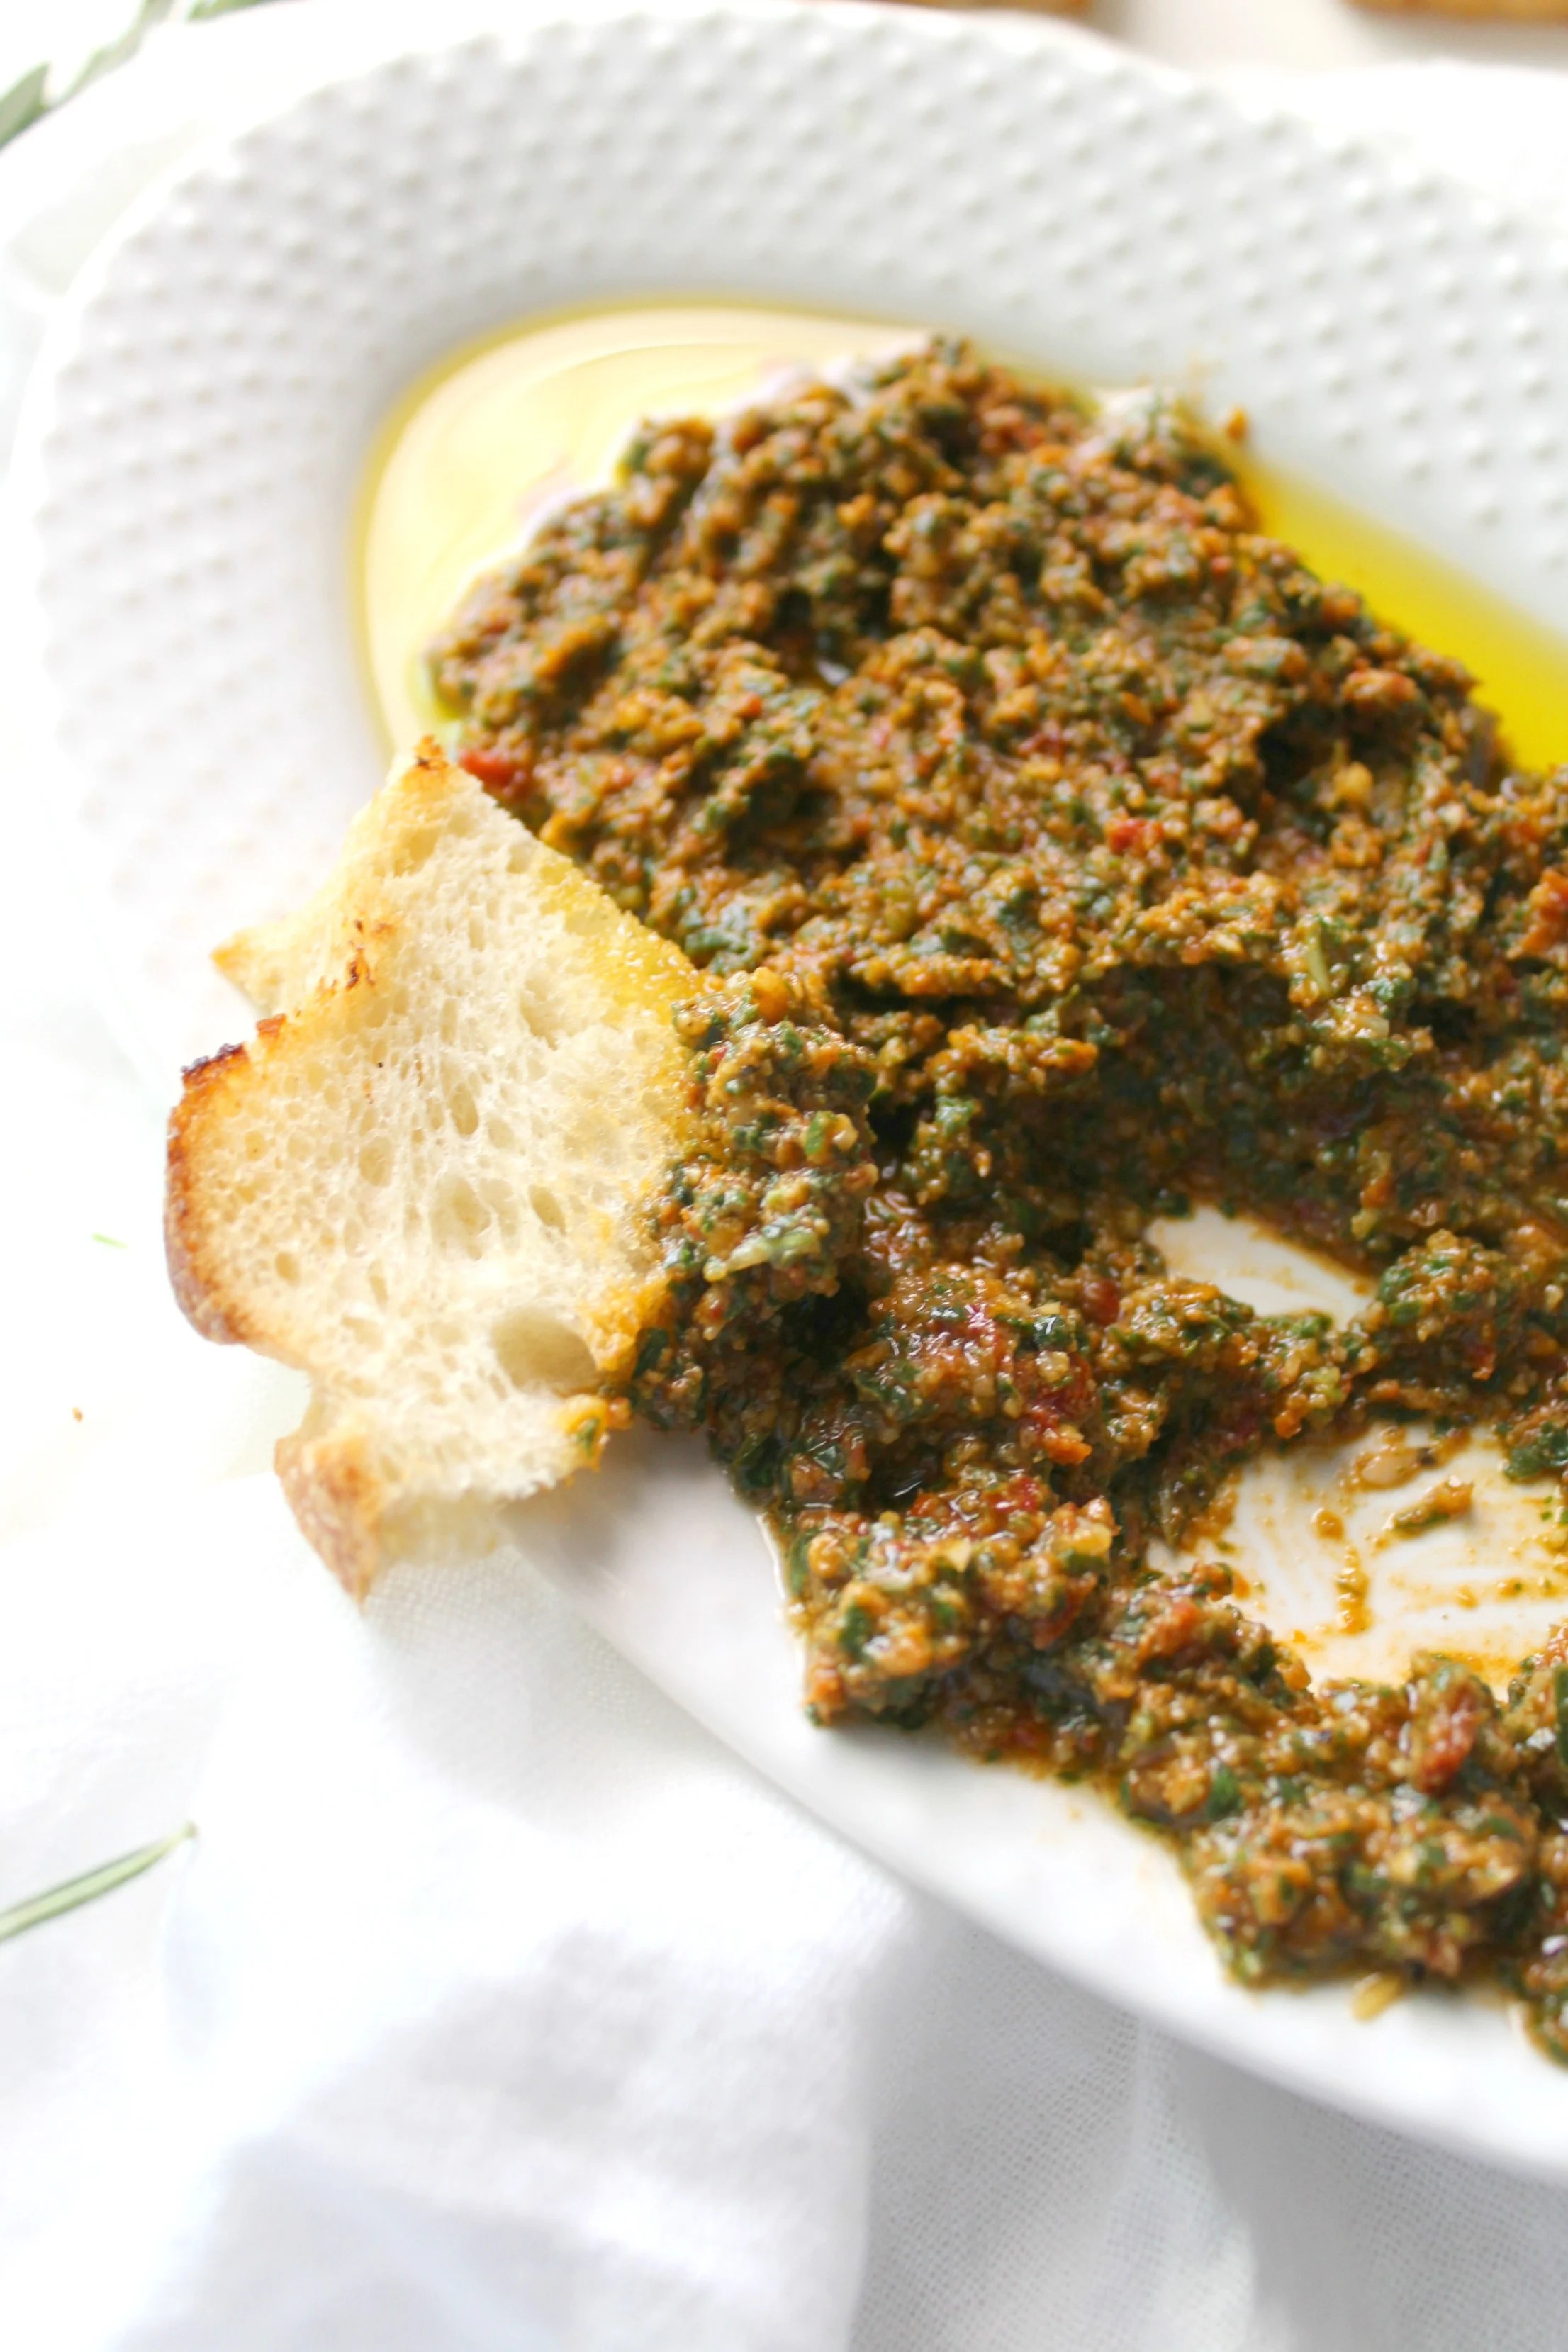 This Simple Vegan Mediterranean Spread is filled with fresh herbs and sun-dried tomatoes and can be served on sandwiches, as a dip or even with pasta | ThisSavoryVegan.com